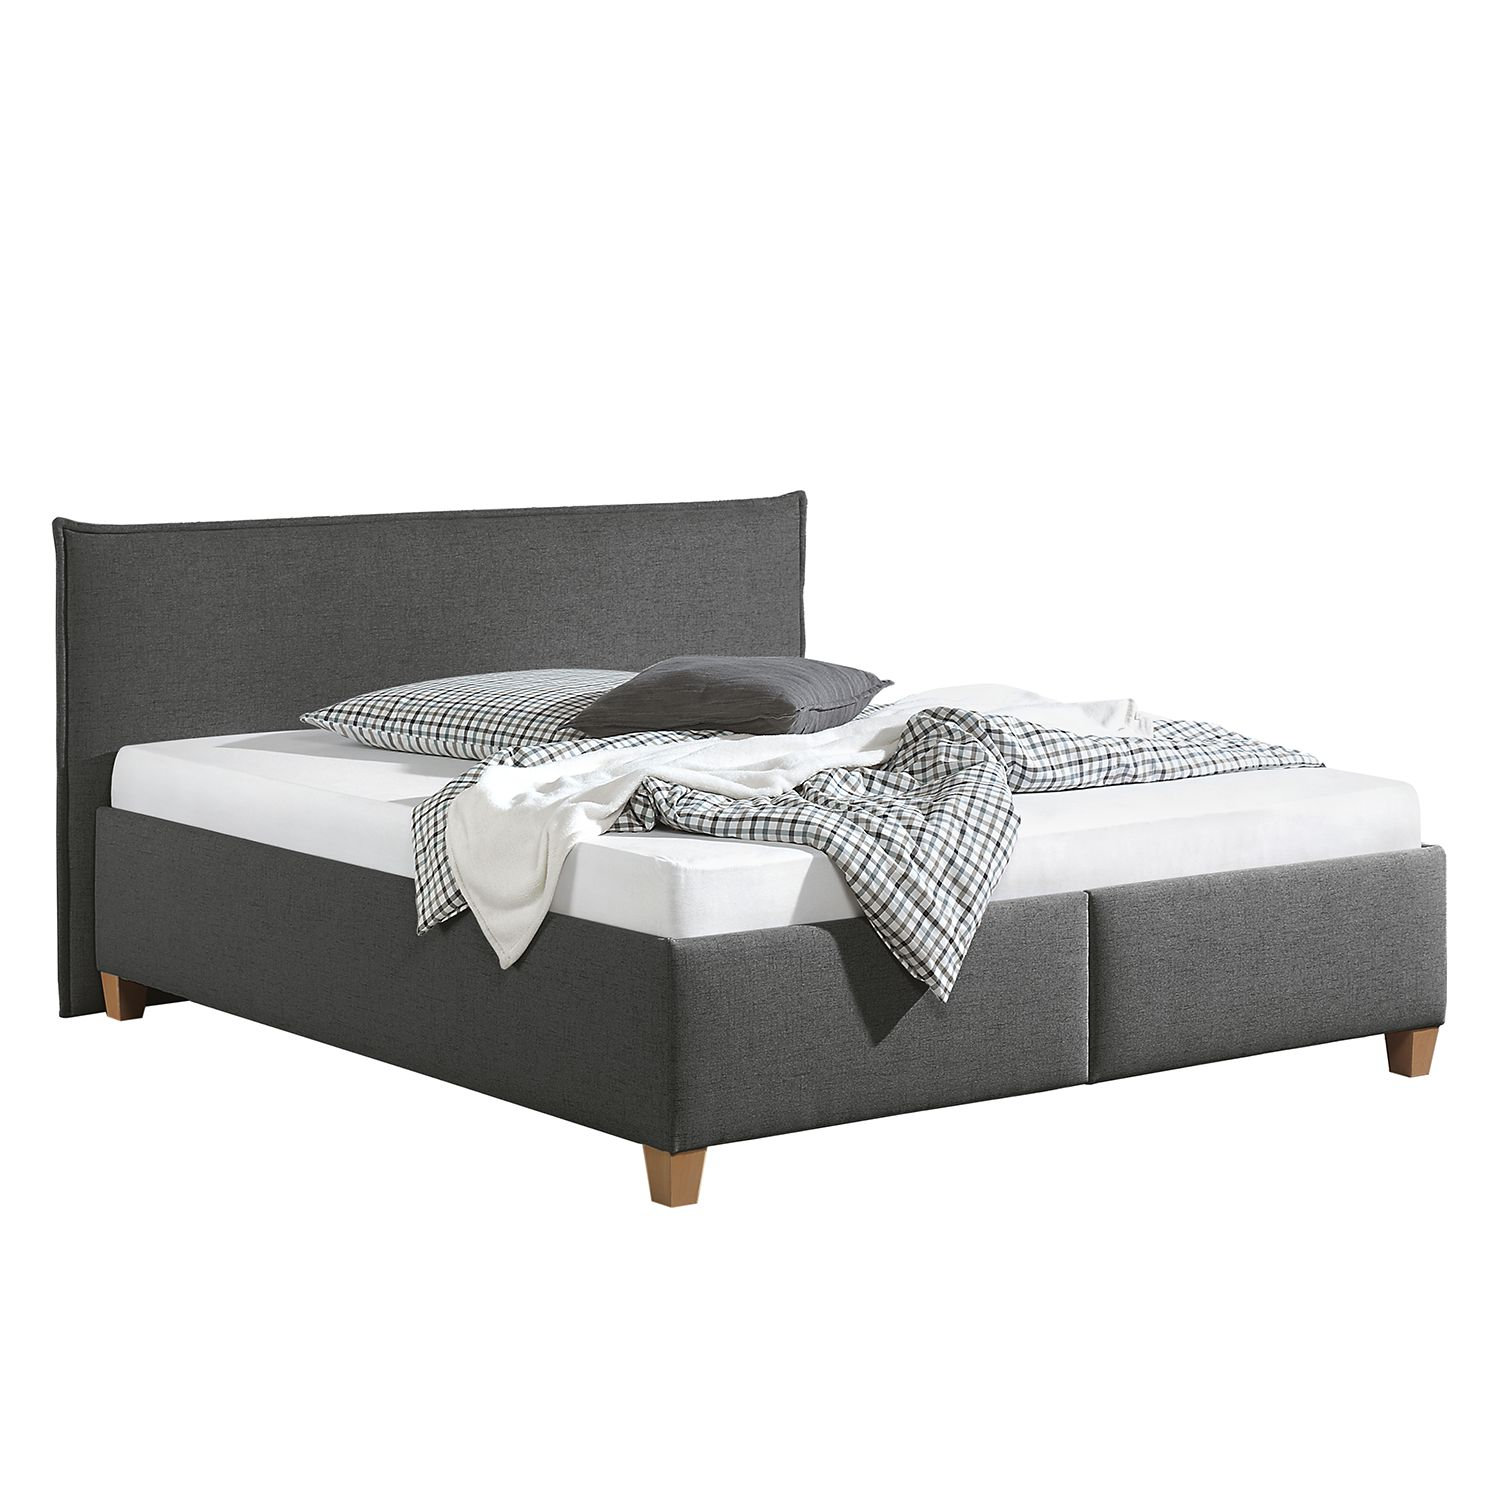 scrapeo contour de lit matelas sommier 90 x 200. Black Bedroom Furniture Sets. Home Design Ideas